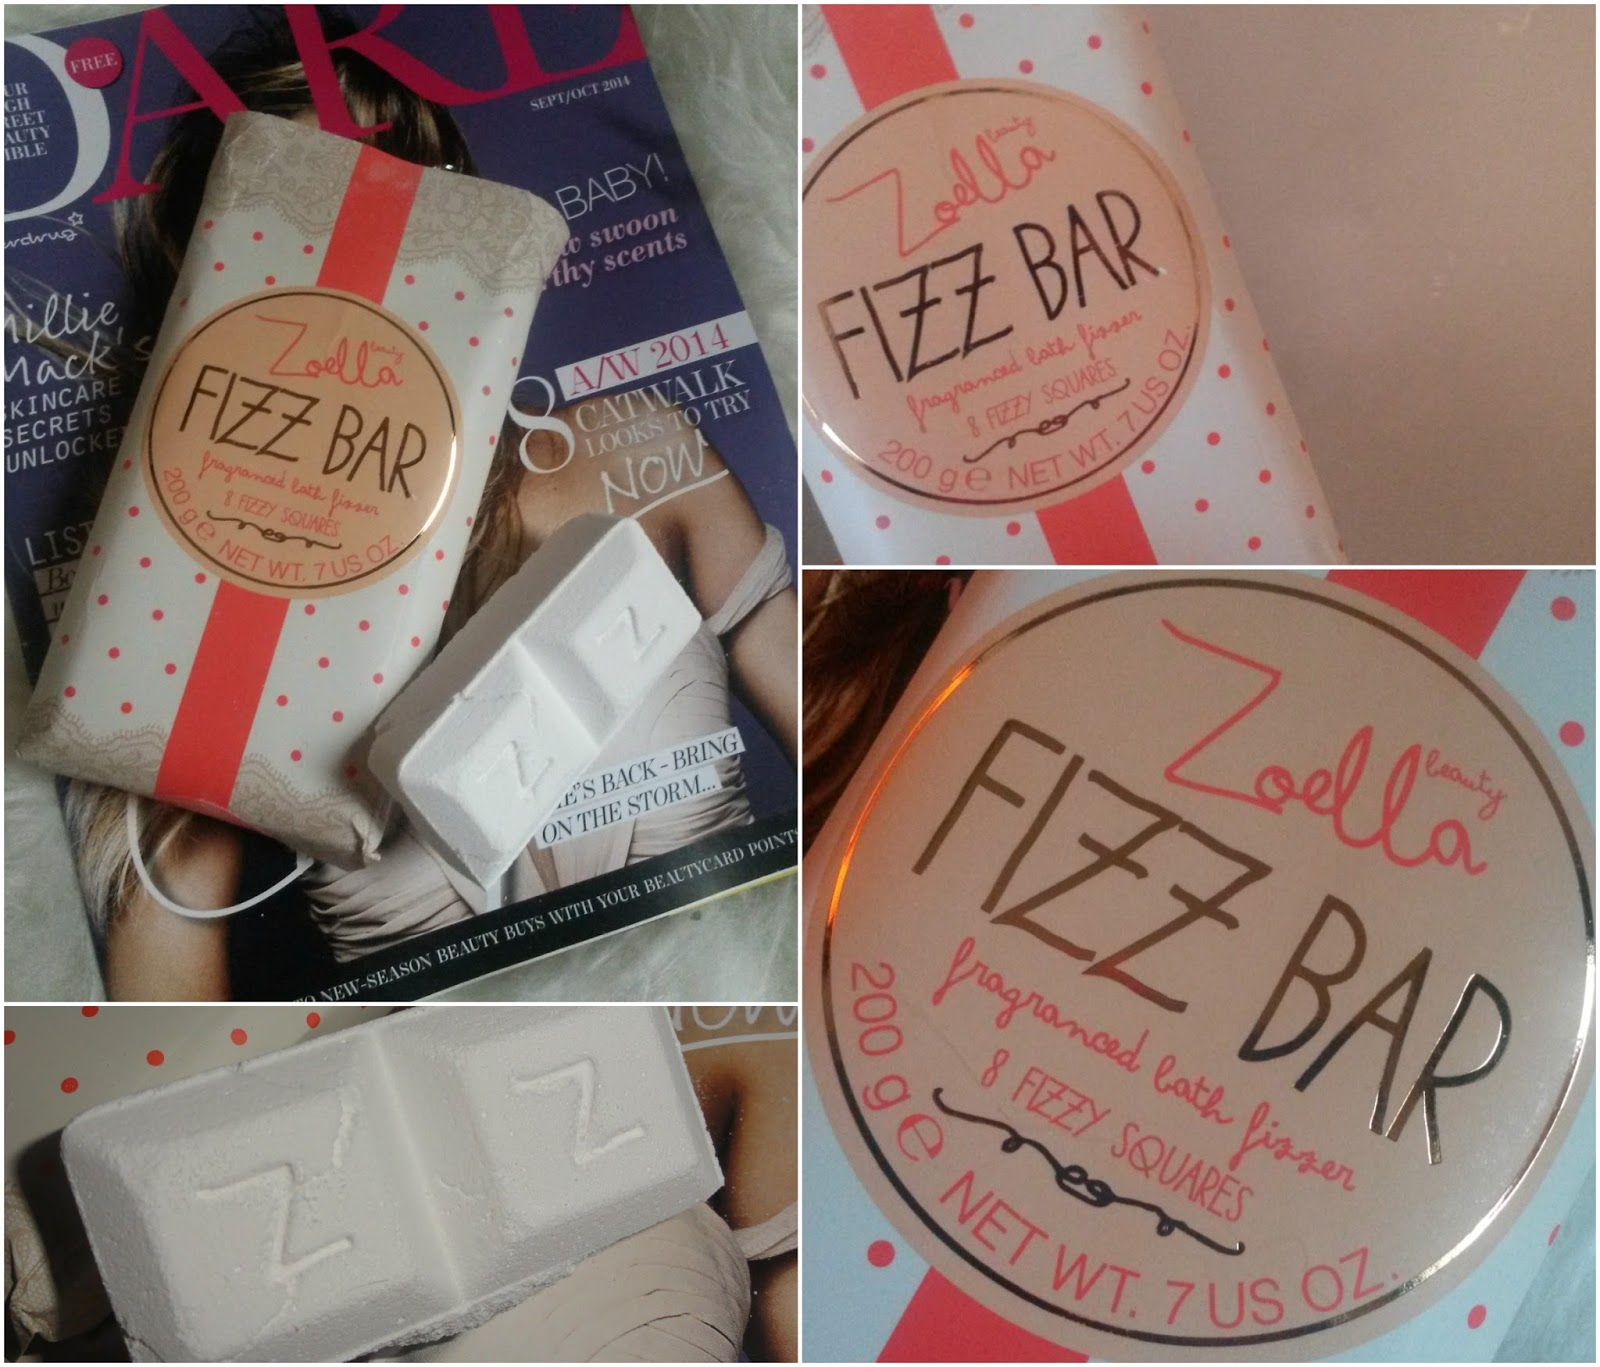 Zoella Beauty: Fizz Bar | Review by ♥ A British Sparkle ♥ on ...